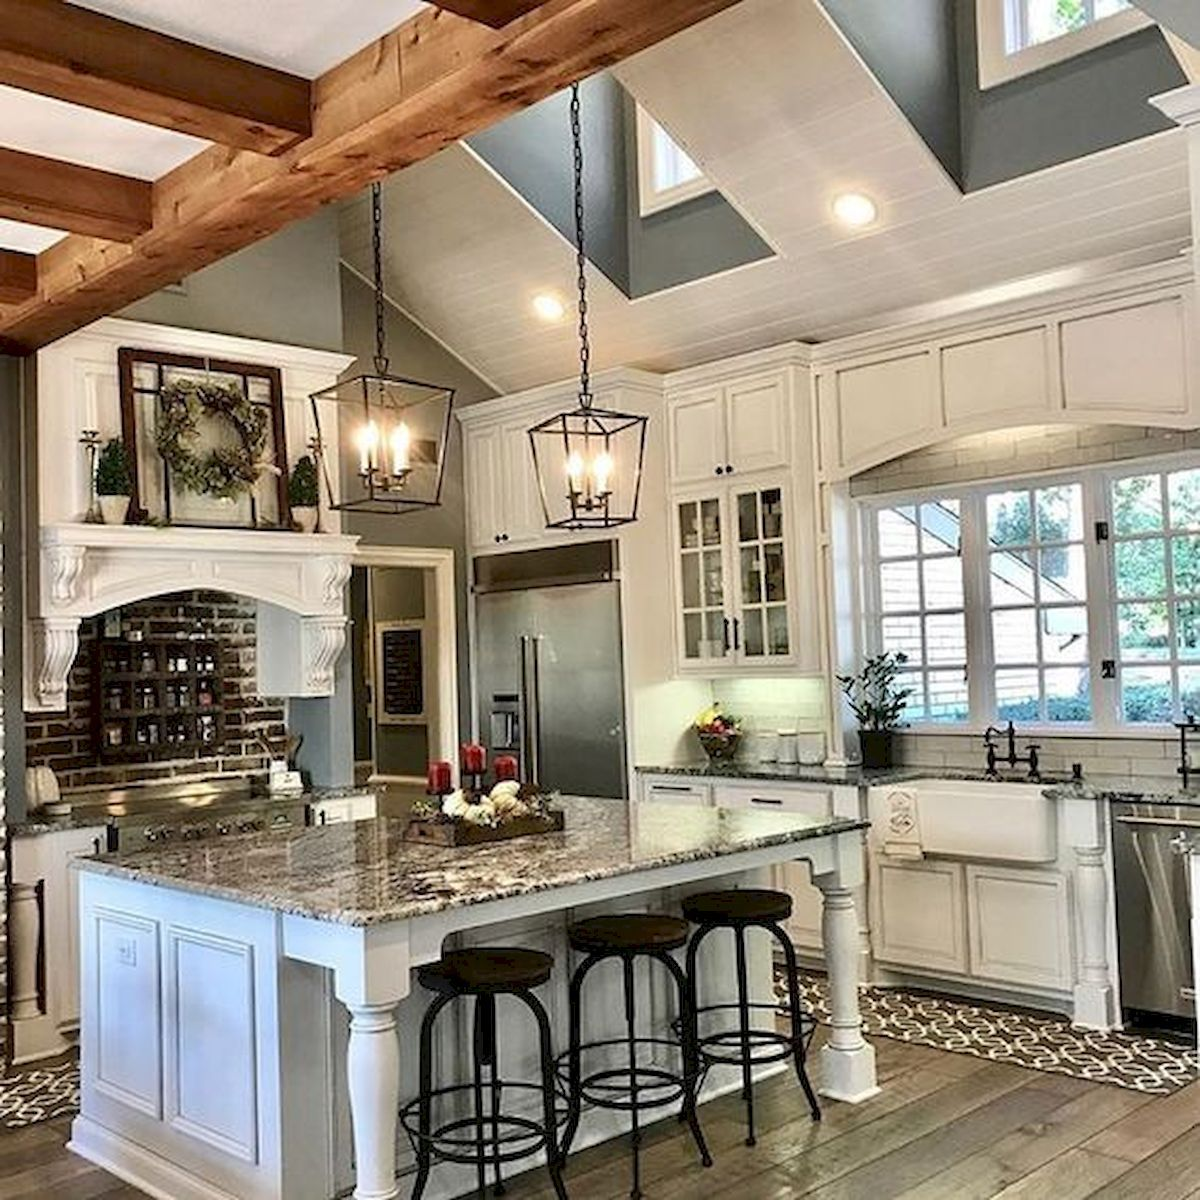 Charming Rustic Kitchen Ideas And Inspirations: 45 Stunning Modern Dream Kitchen Design Ideas And Decor